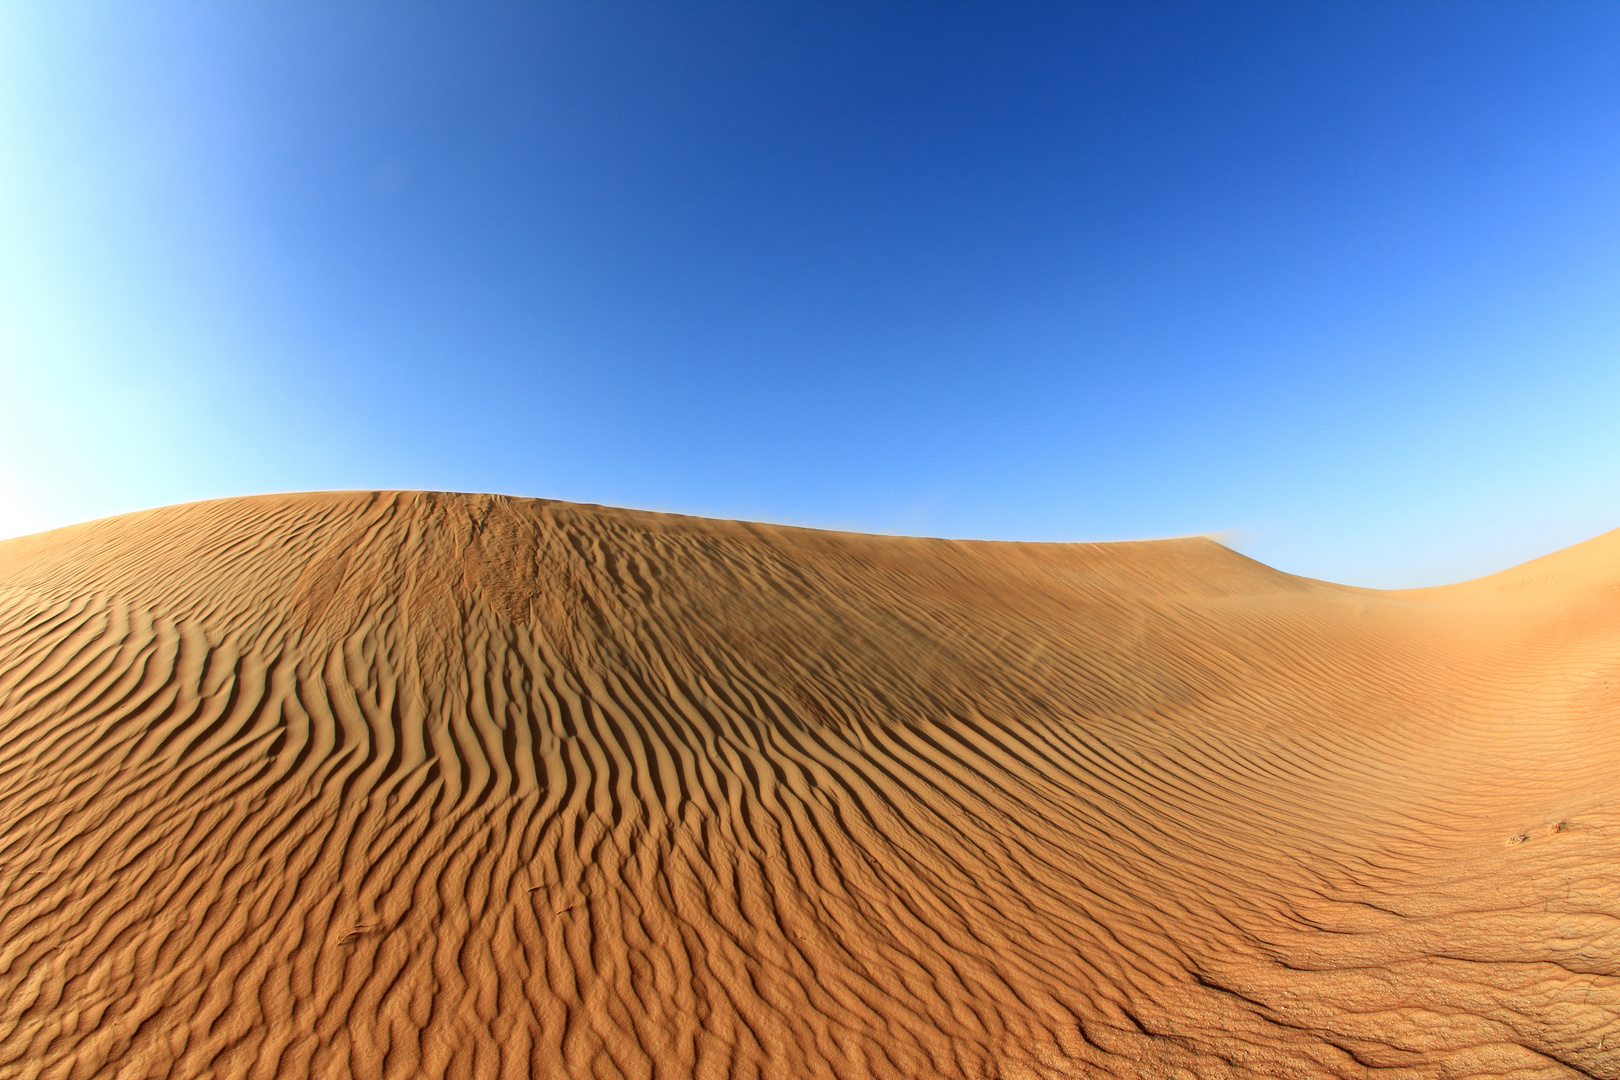 The UAE Desert